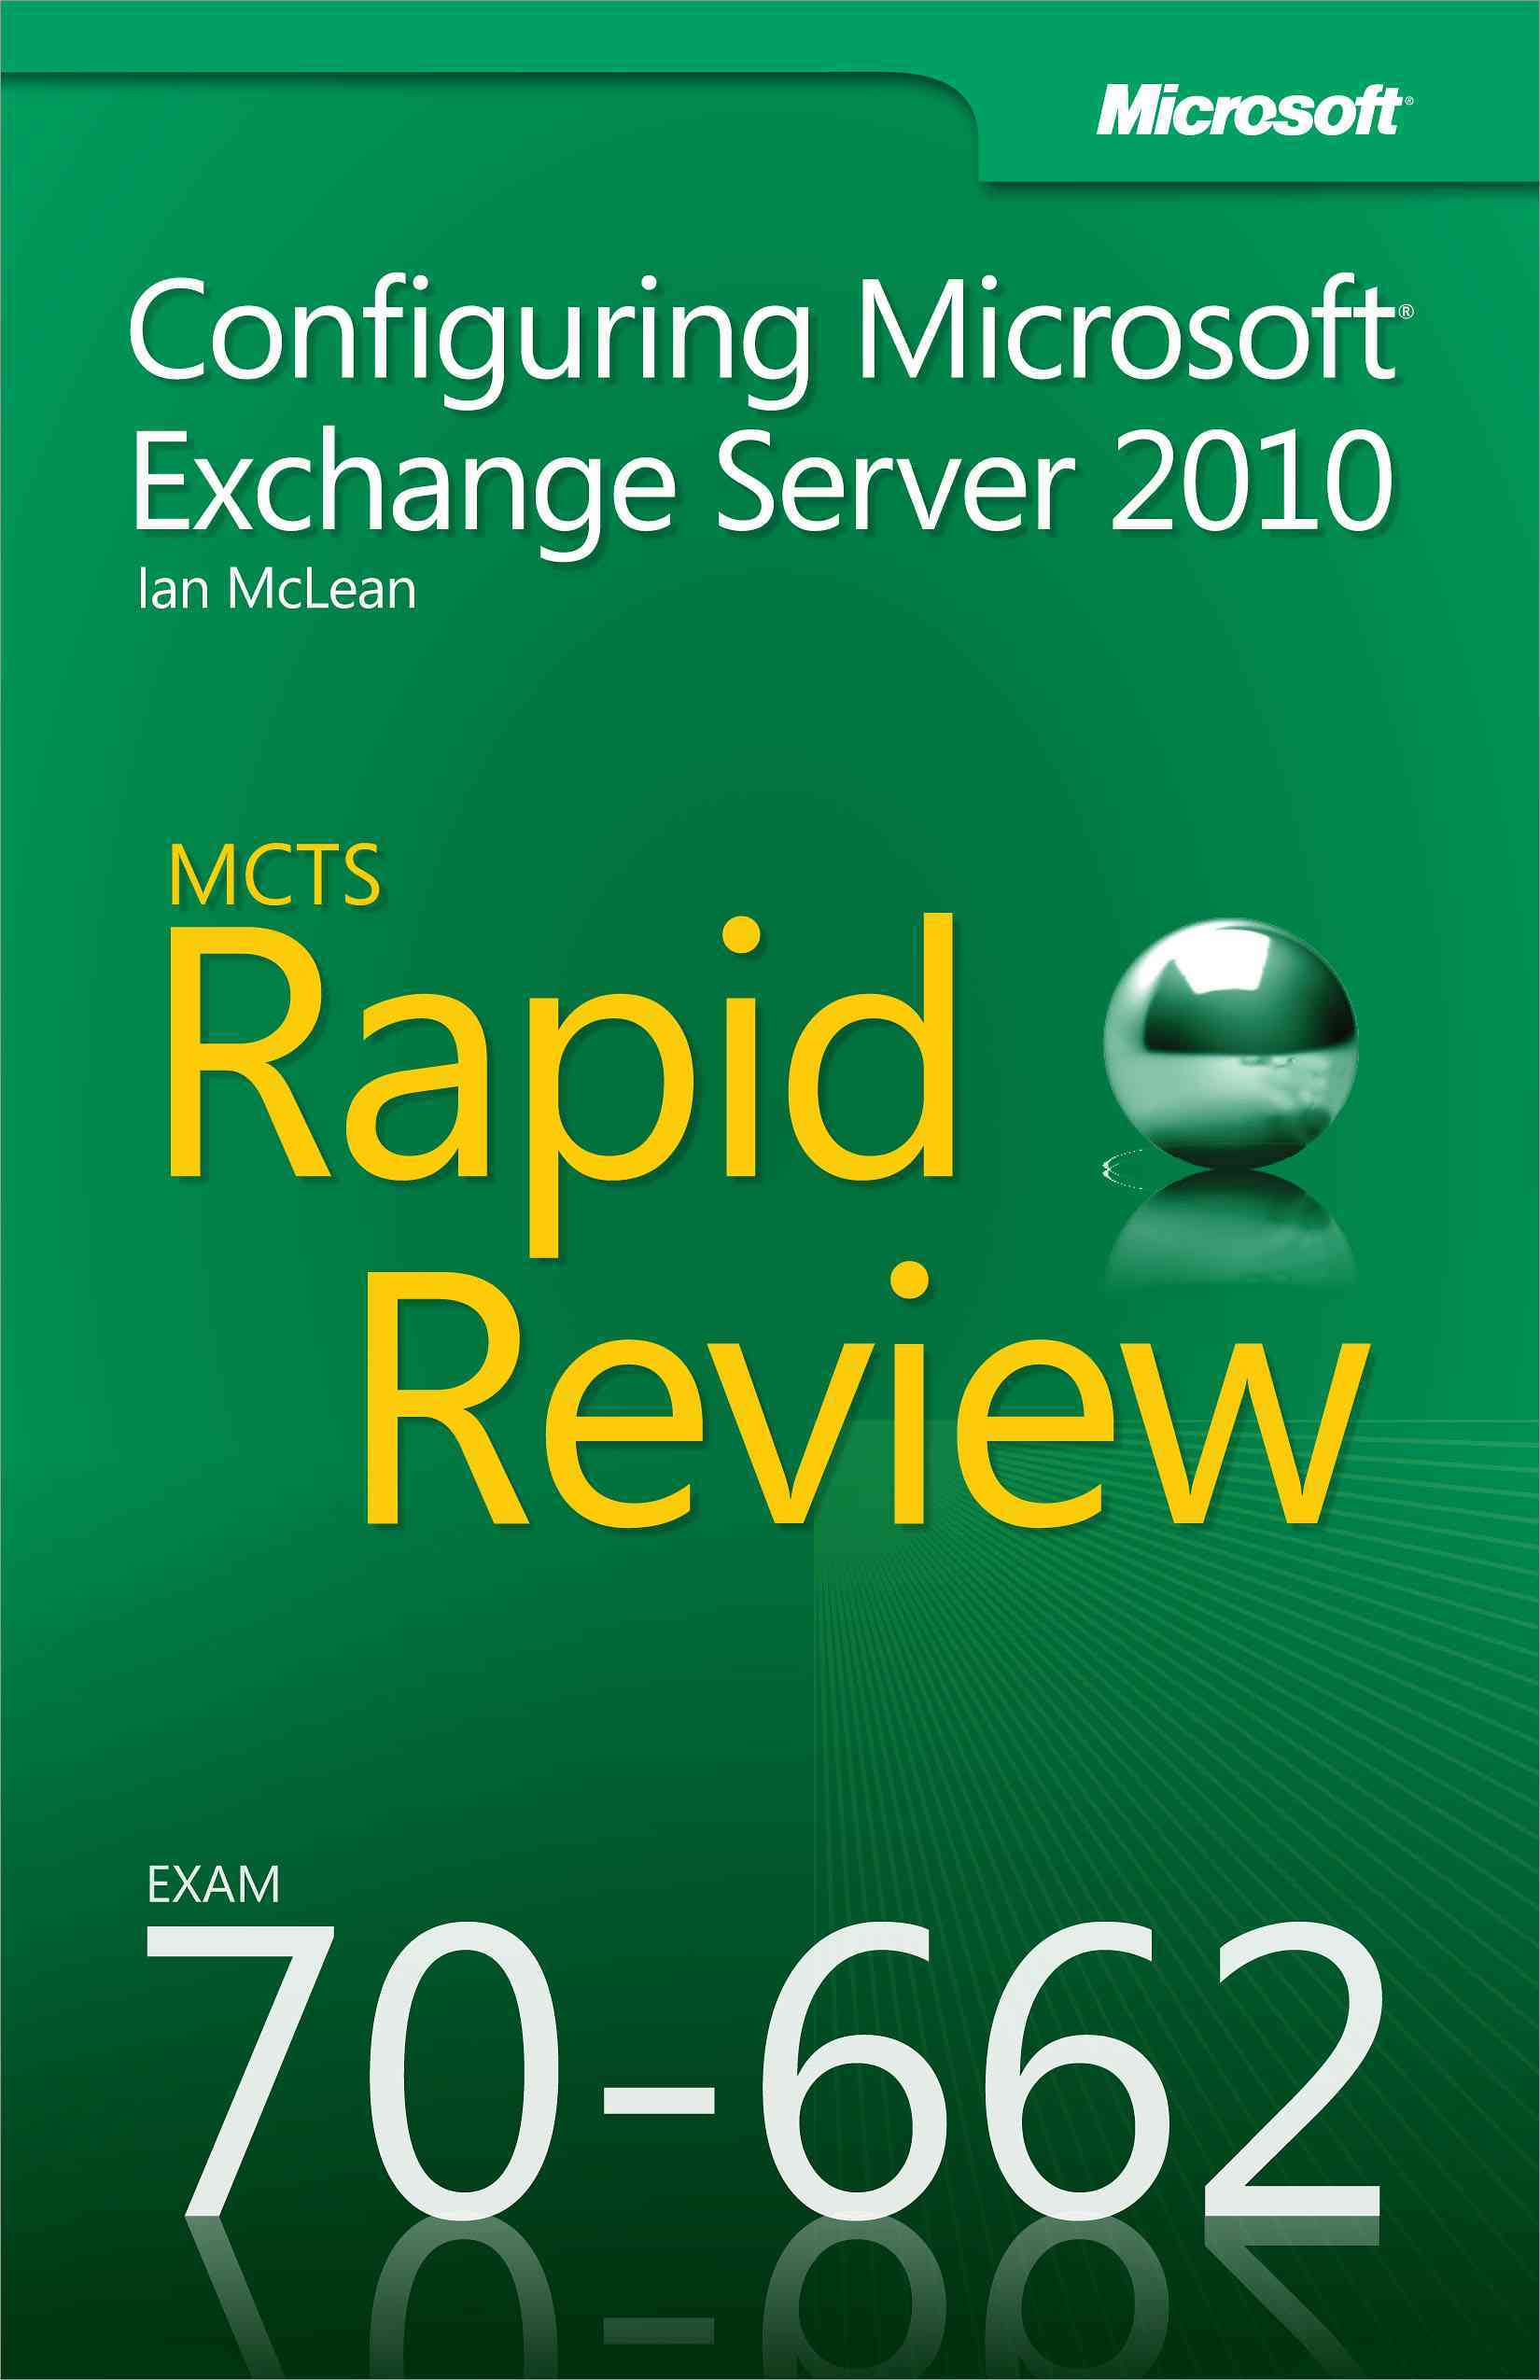 Mcts 70-662 Rapid Review: Configuring Microsoft Exchange Server 2010 (Paperback) - Thumbnail 0